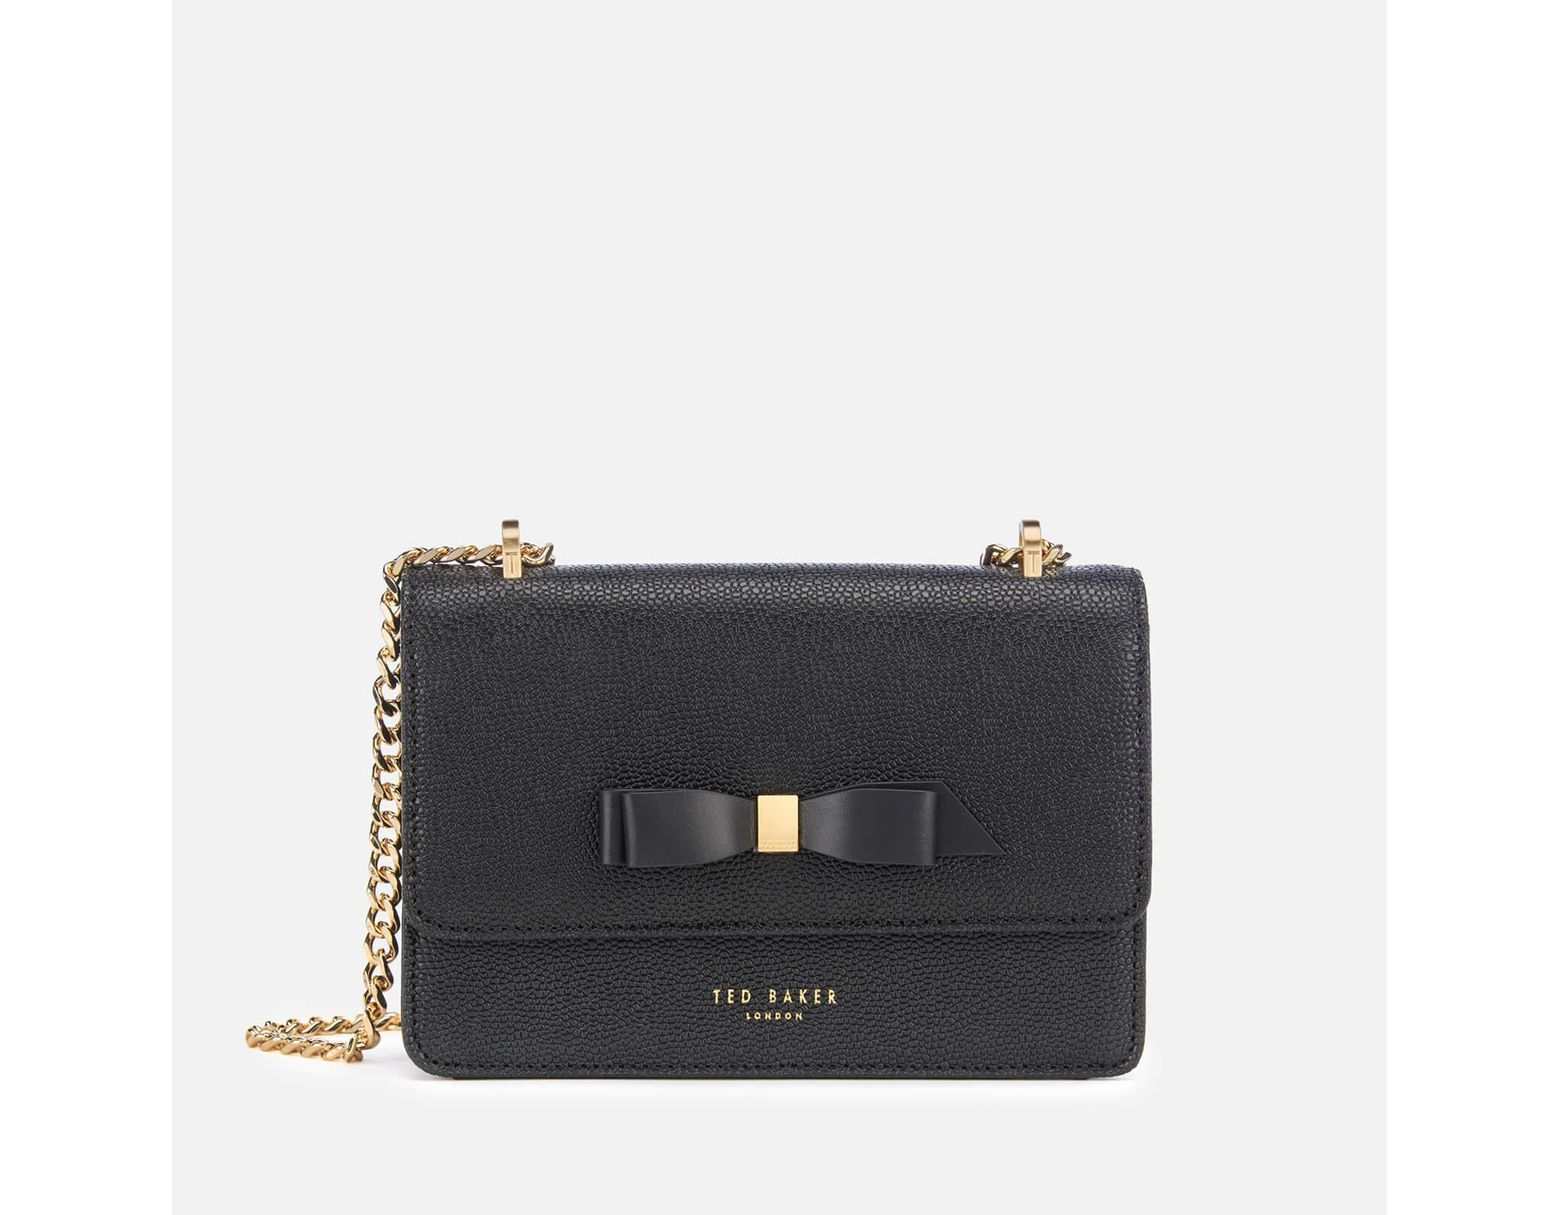 5b1837e10 Ted Baker Jayllaa Bow Detail Micro Cross Body Bag in Black - Lyst